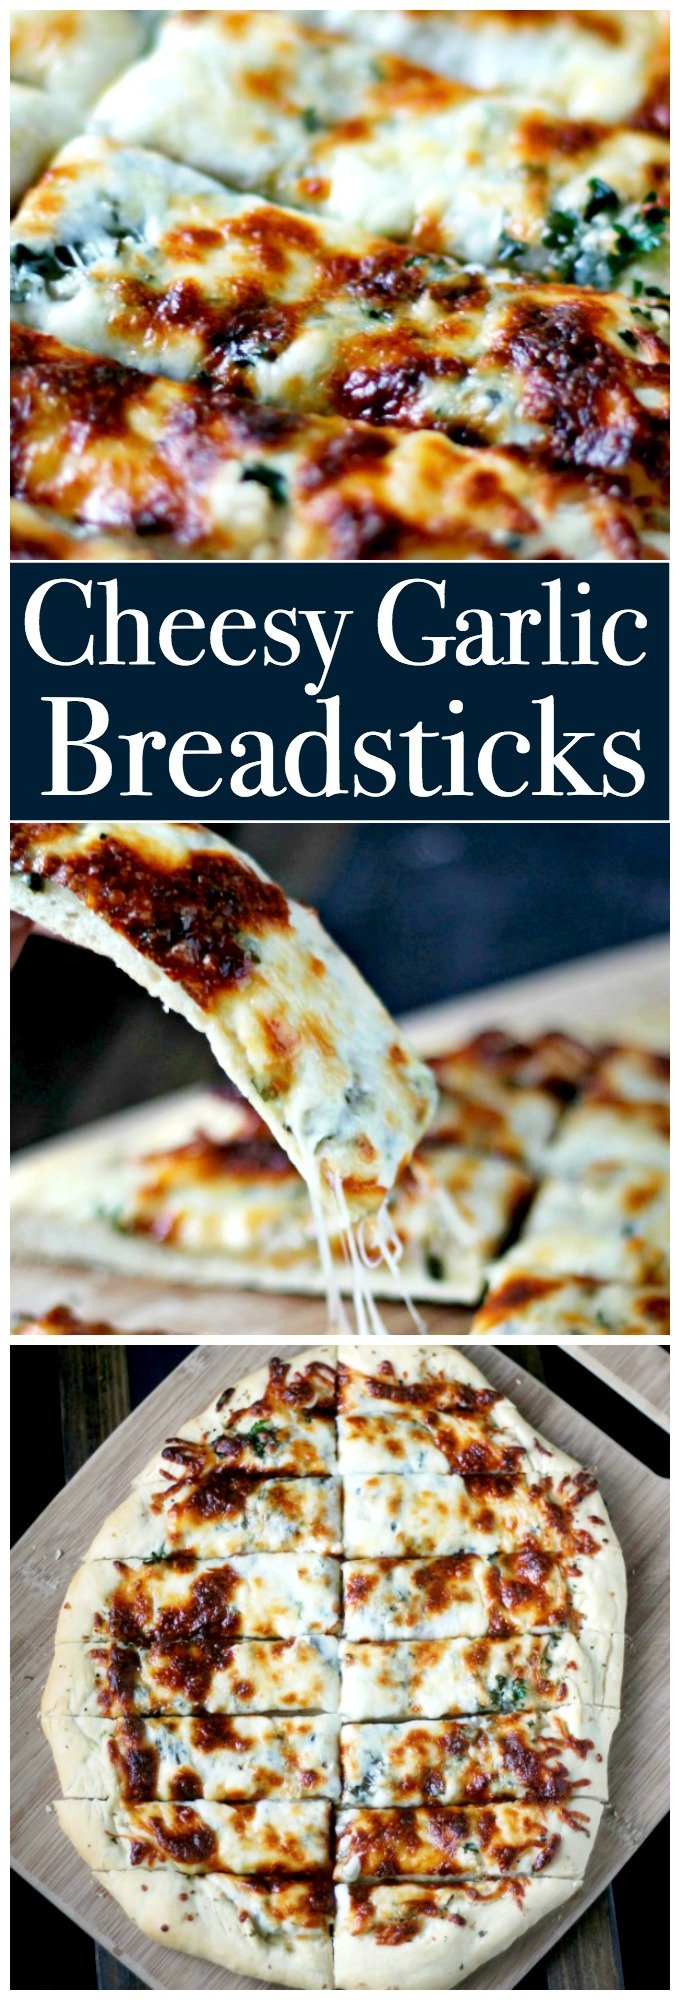 Cheesy Garlic Breadsticks will leave everyone's mouth watering. Made on fresh dough and loaded with cheese, this is a winner!